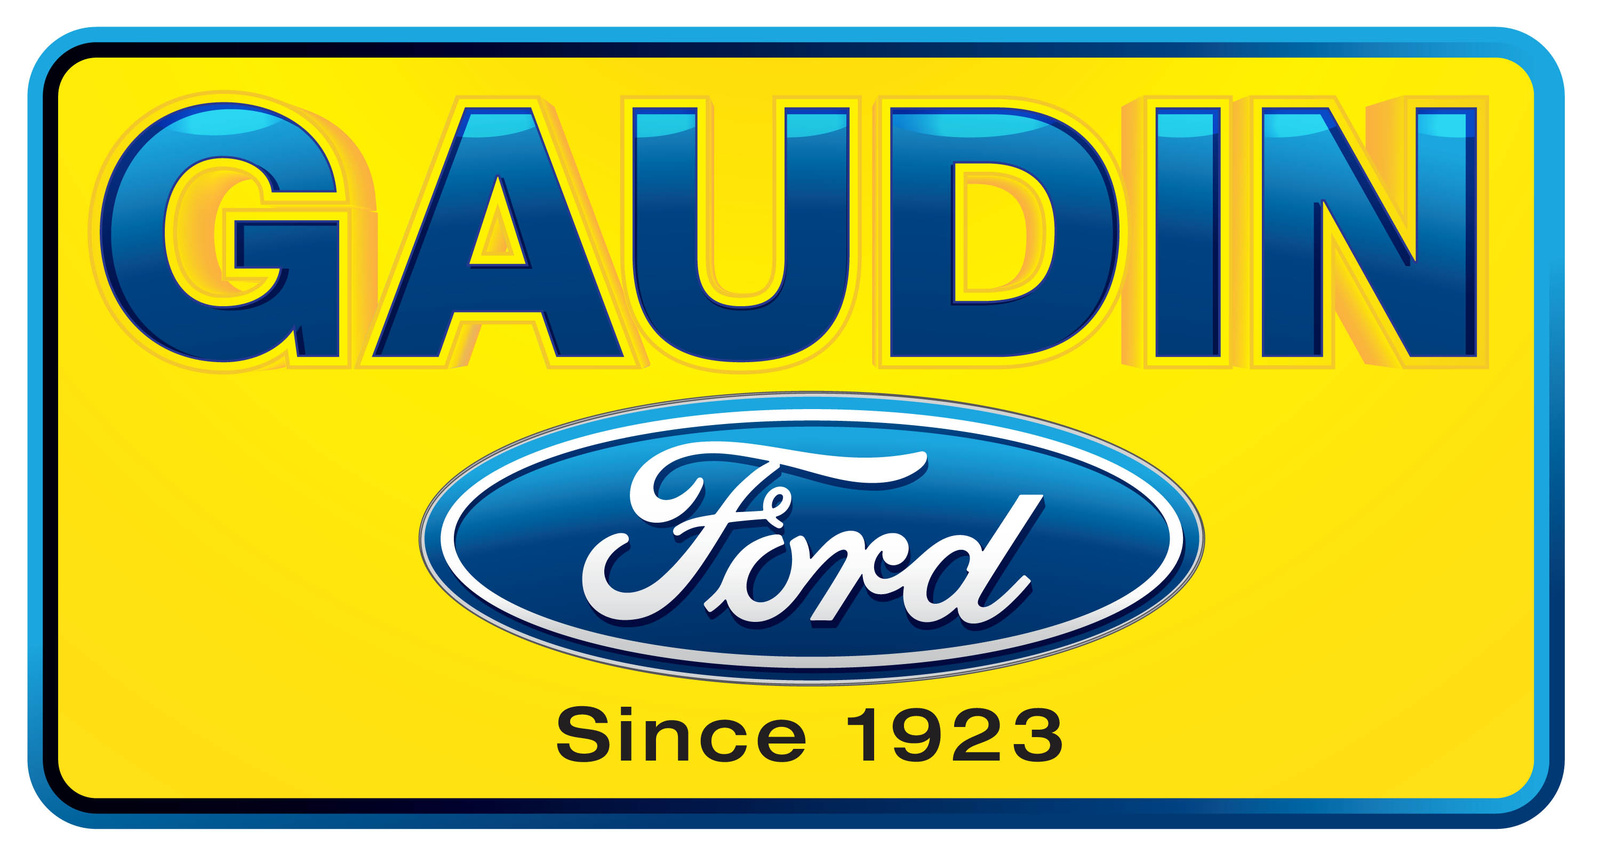 Used Land Rover For Sale Las Vegas Nv Cargurus >> Gaudin Ford - Las Vegas, NV: Read Consumer reviews, Browse ...